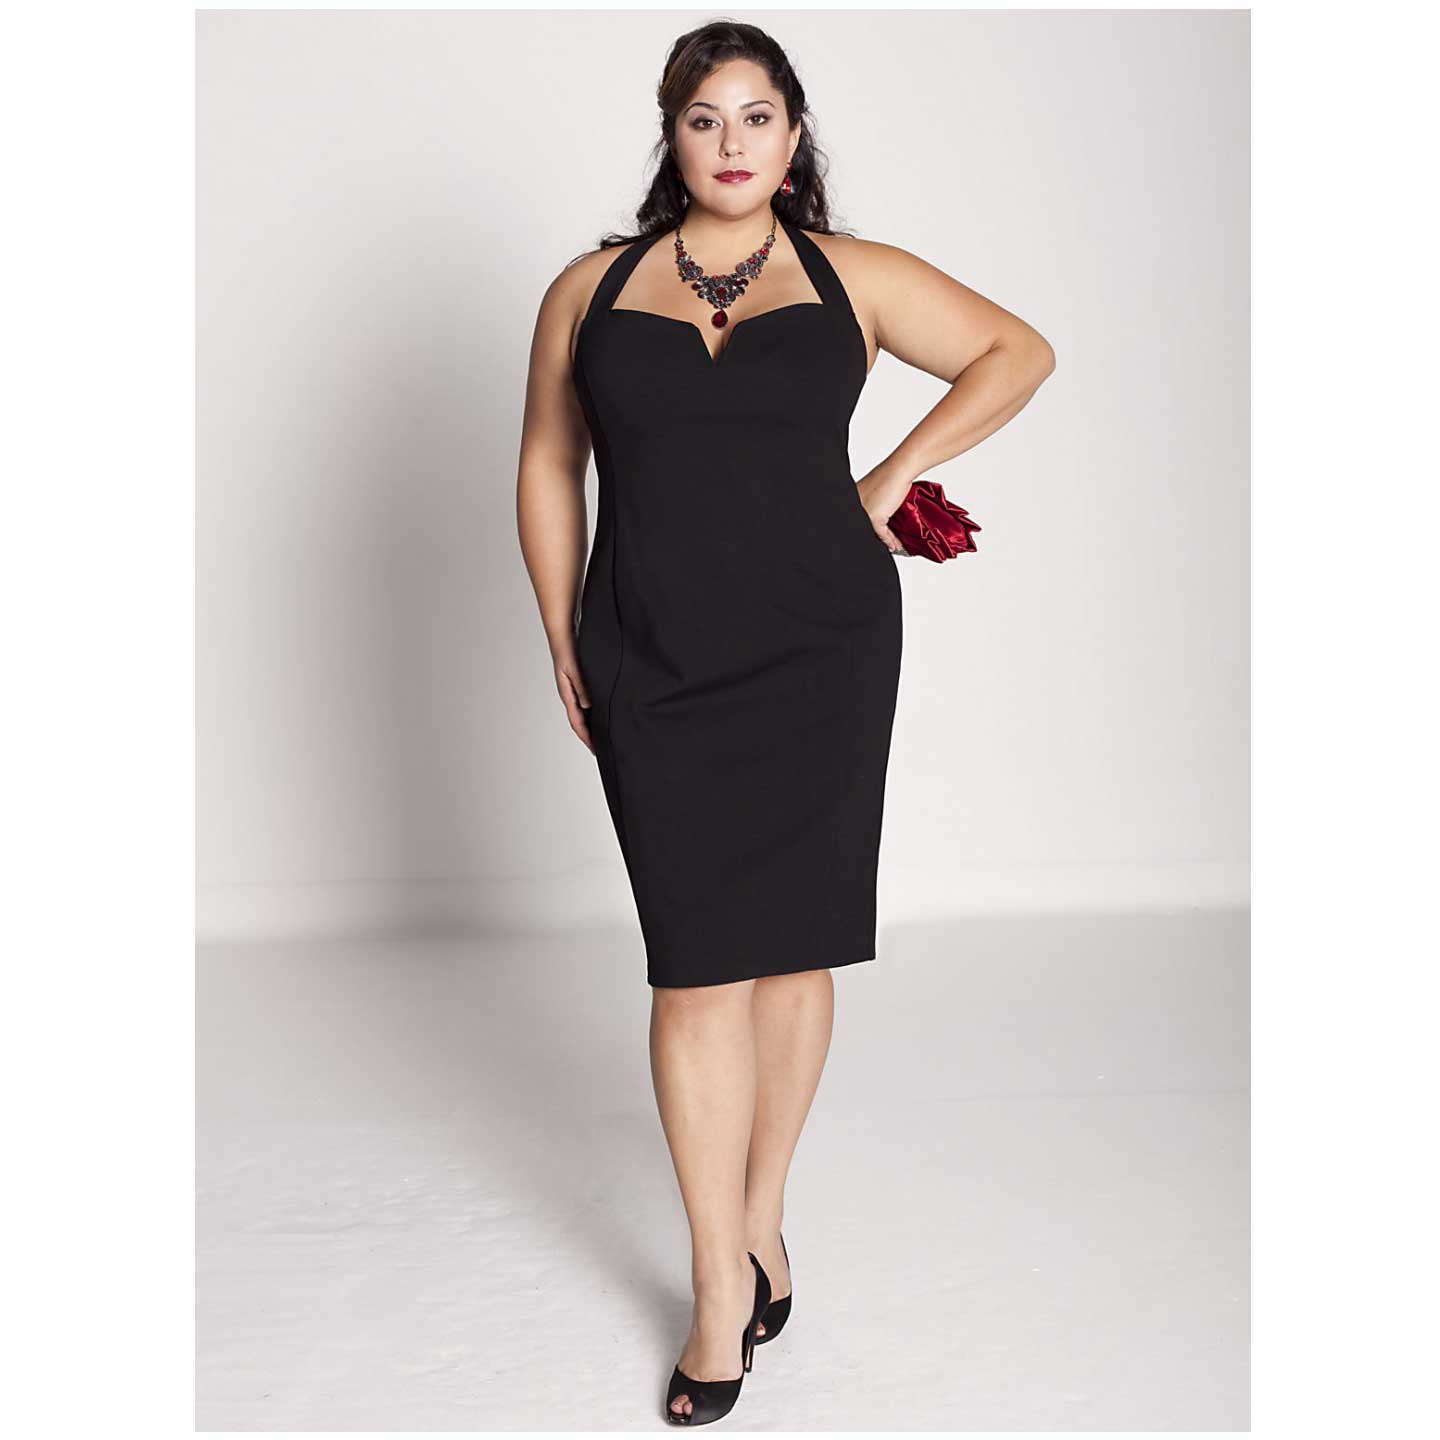 Super sexy plus size dresses are just a click away at Yandy! Shop now for the hottest styles of plus size sexy dresses for the club, parties, or just a night out! Free shipping on orders over $